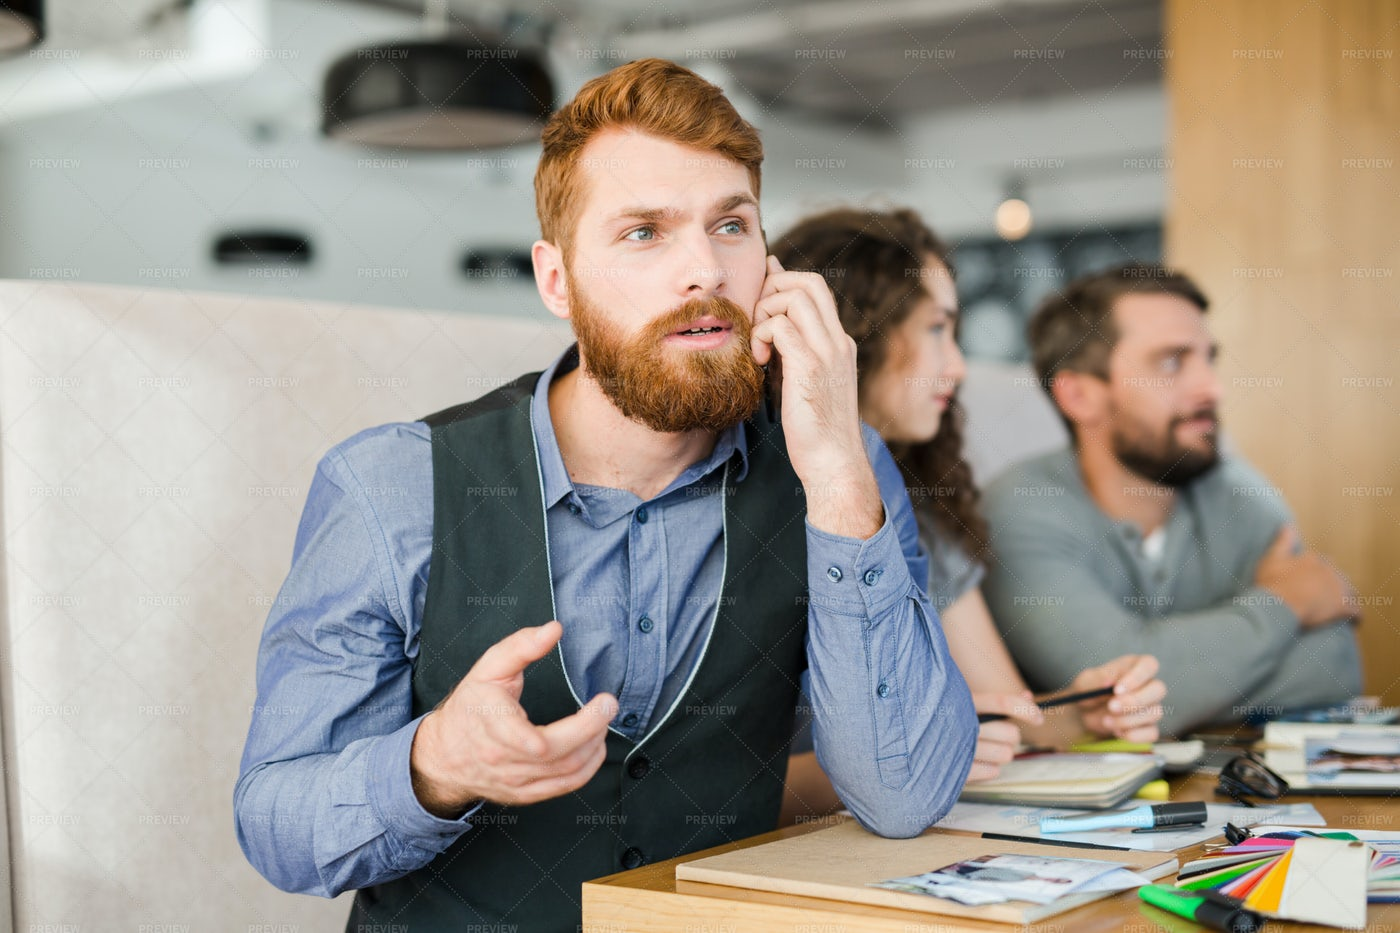 Consulting On The Phone: Stock Photos